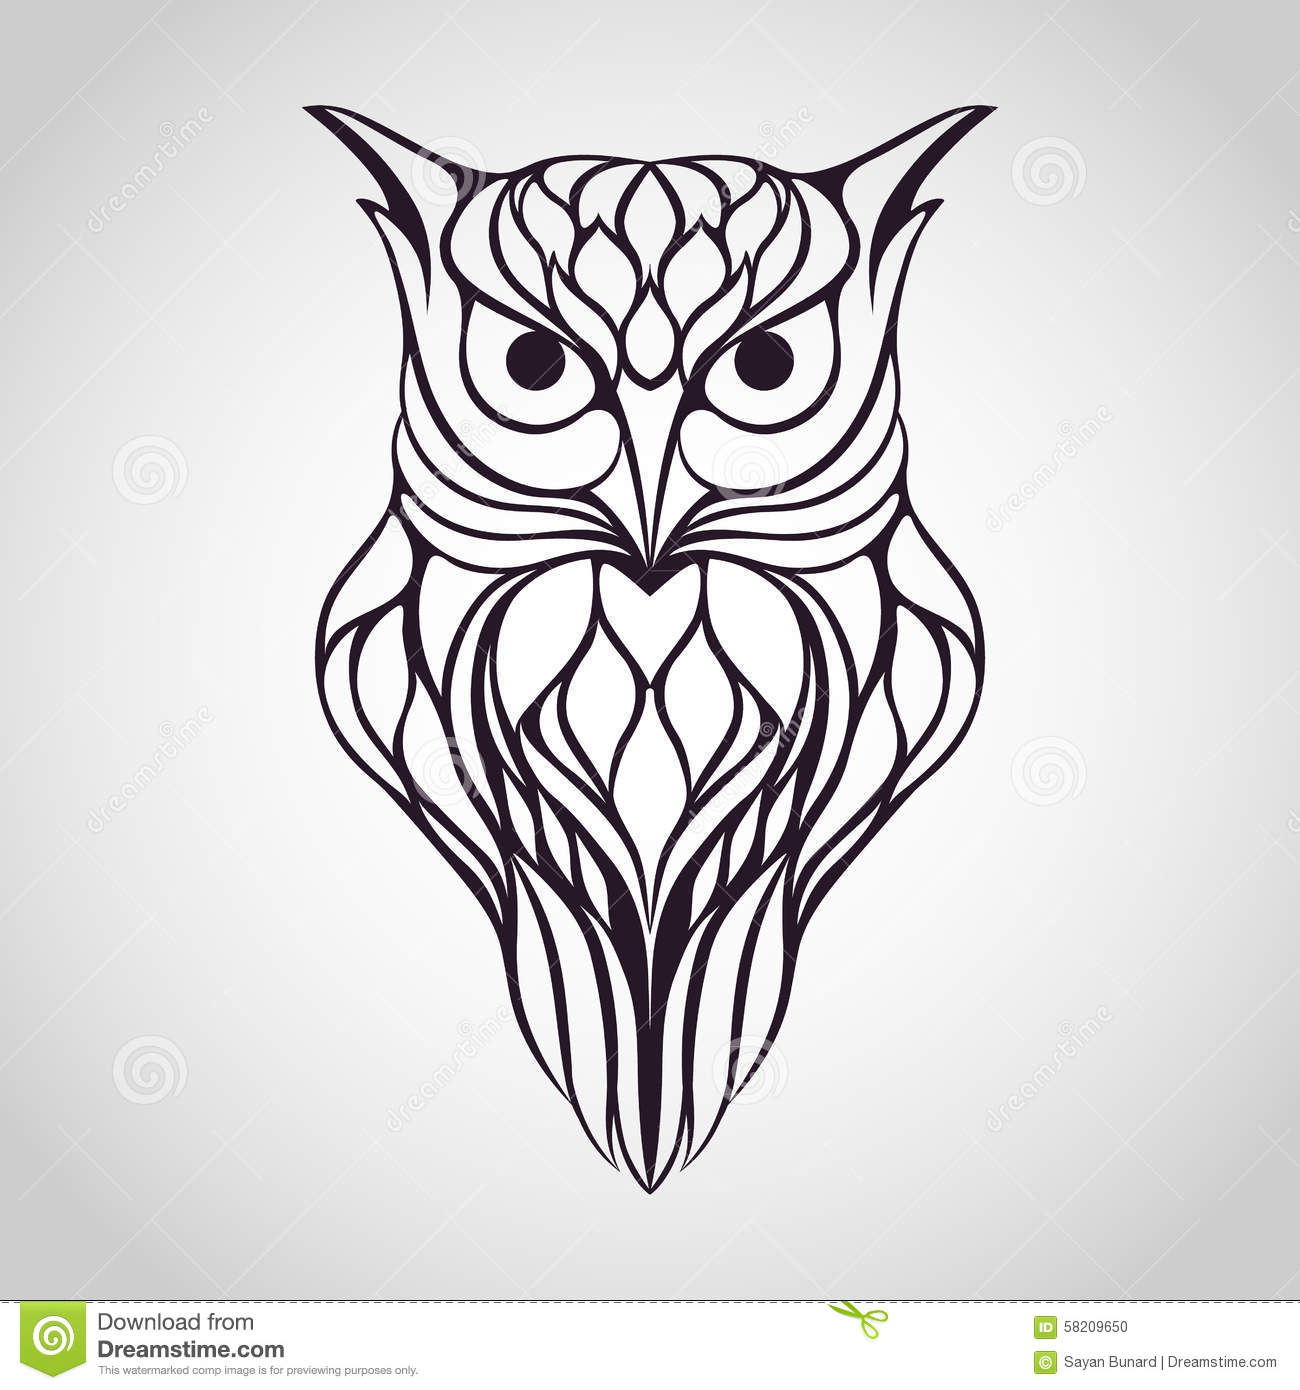 Cool vector owl pictures